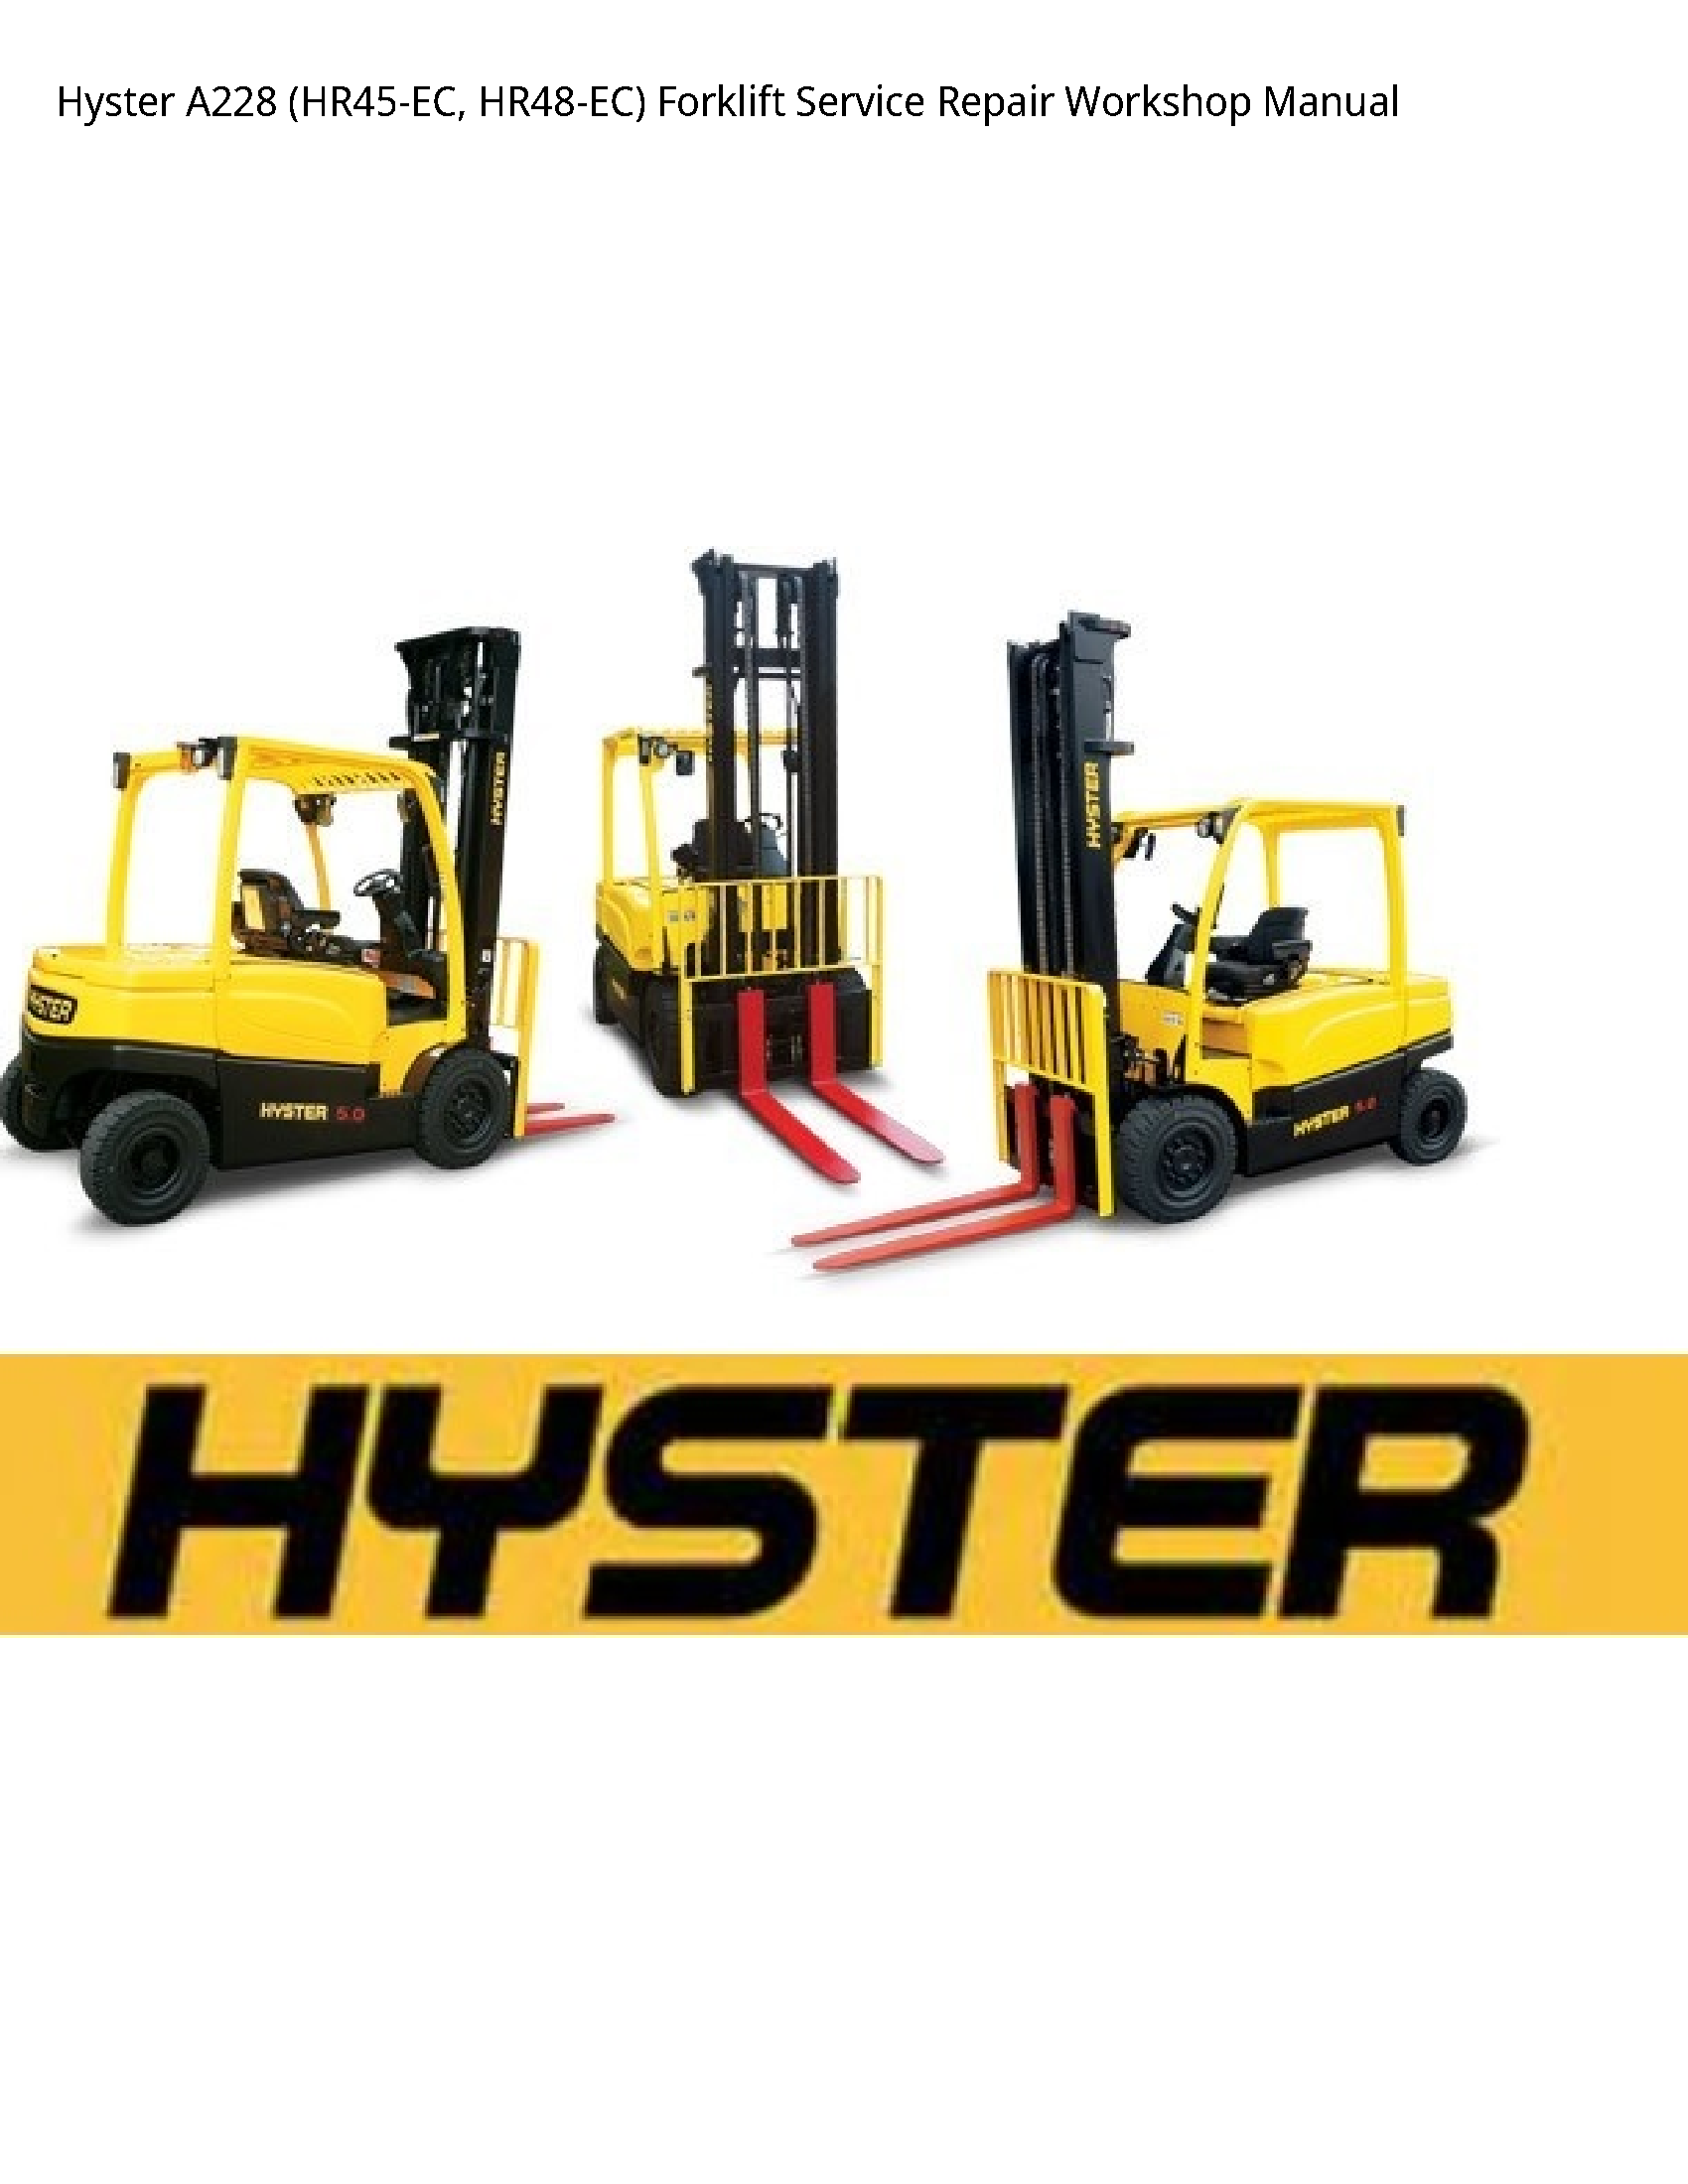 Hyster A228 Forklift manual